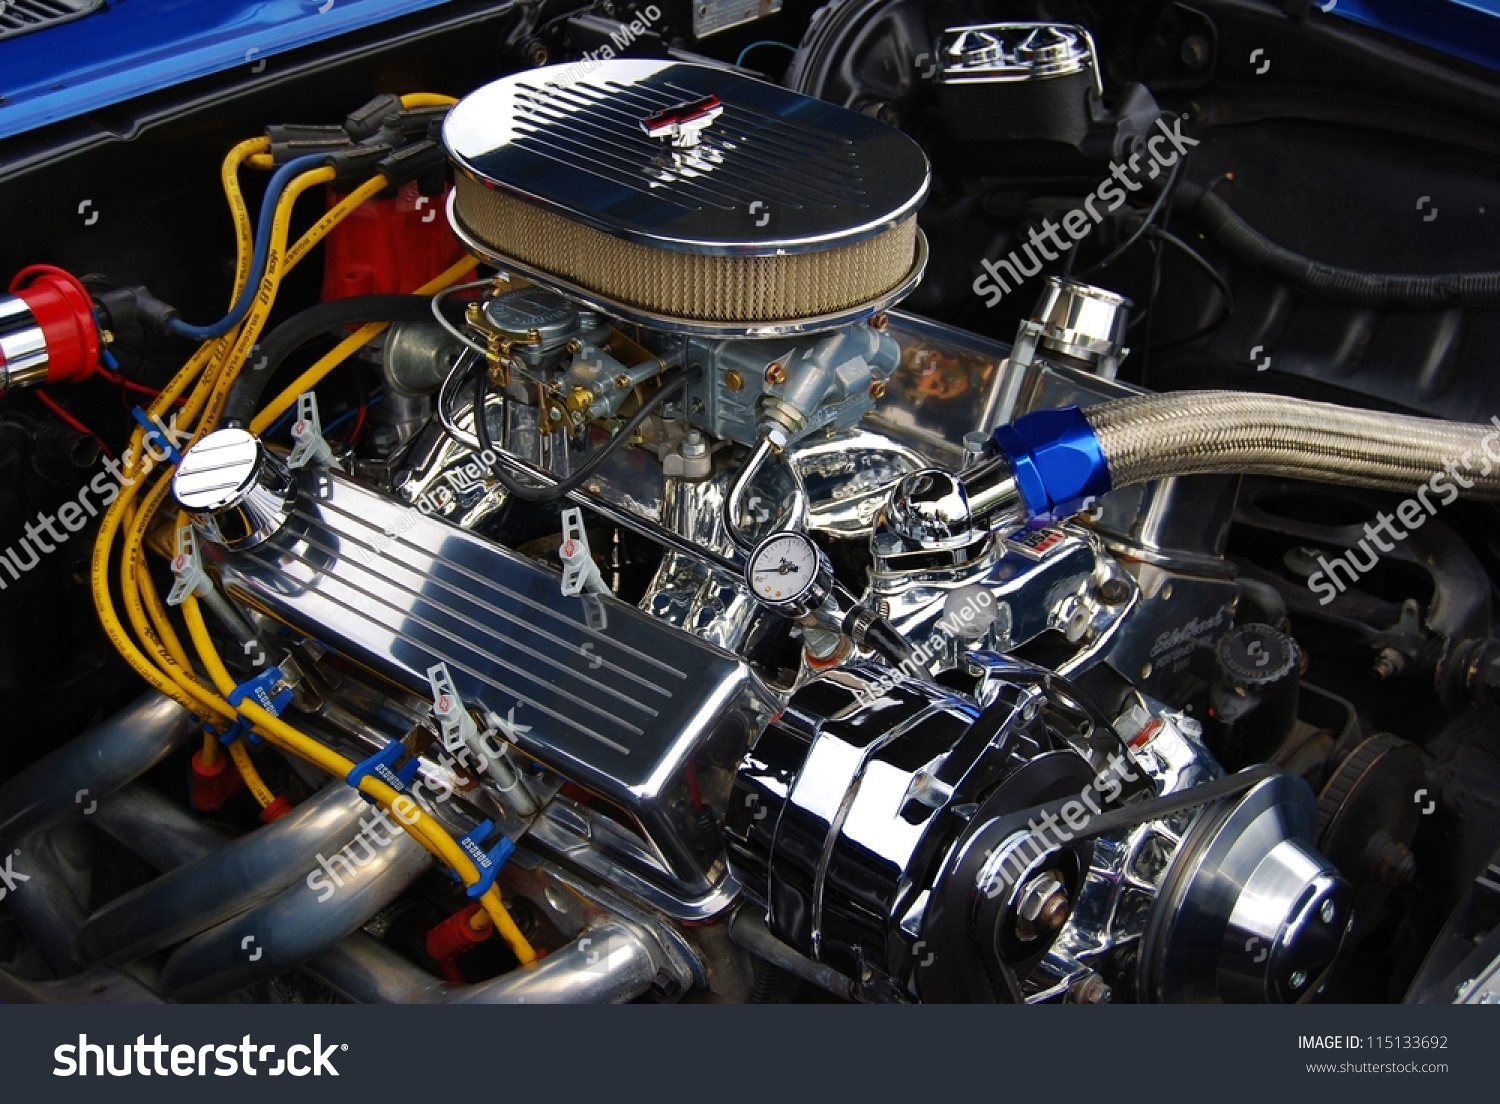 Frederick md september 16 1969 blue chevy ss 350 motor for Motor vehicle administration md